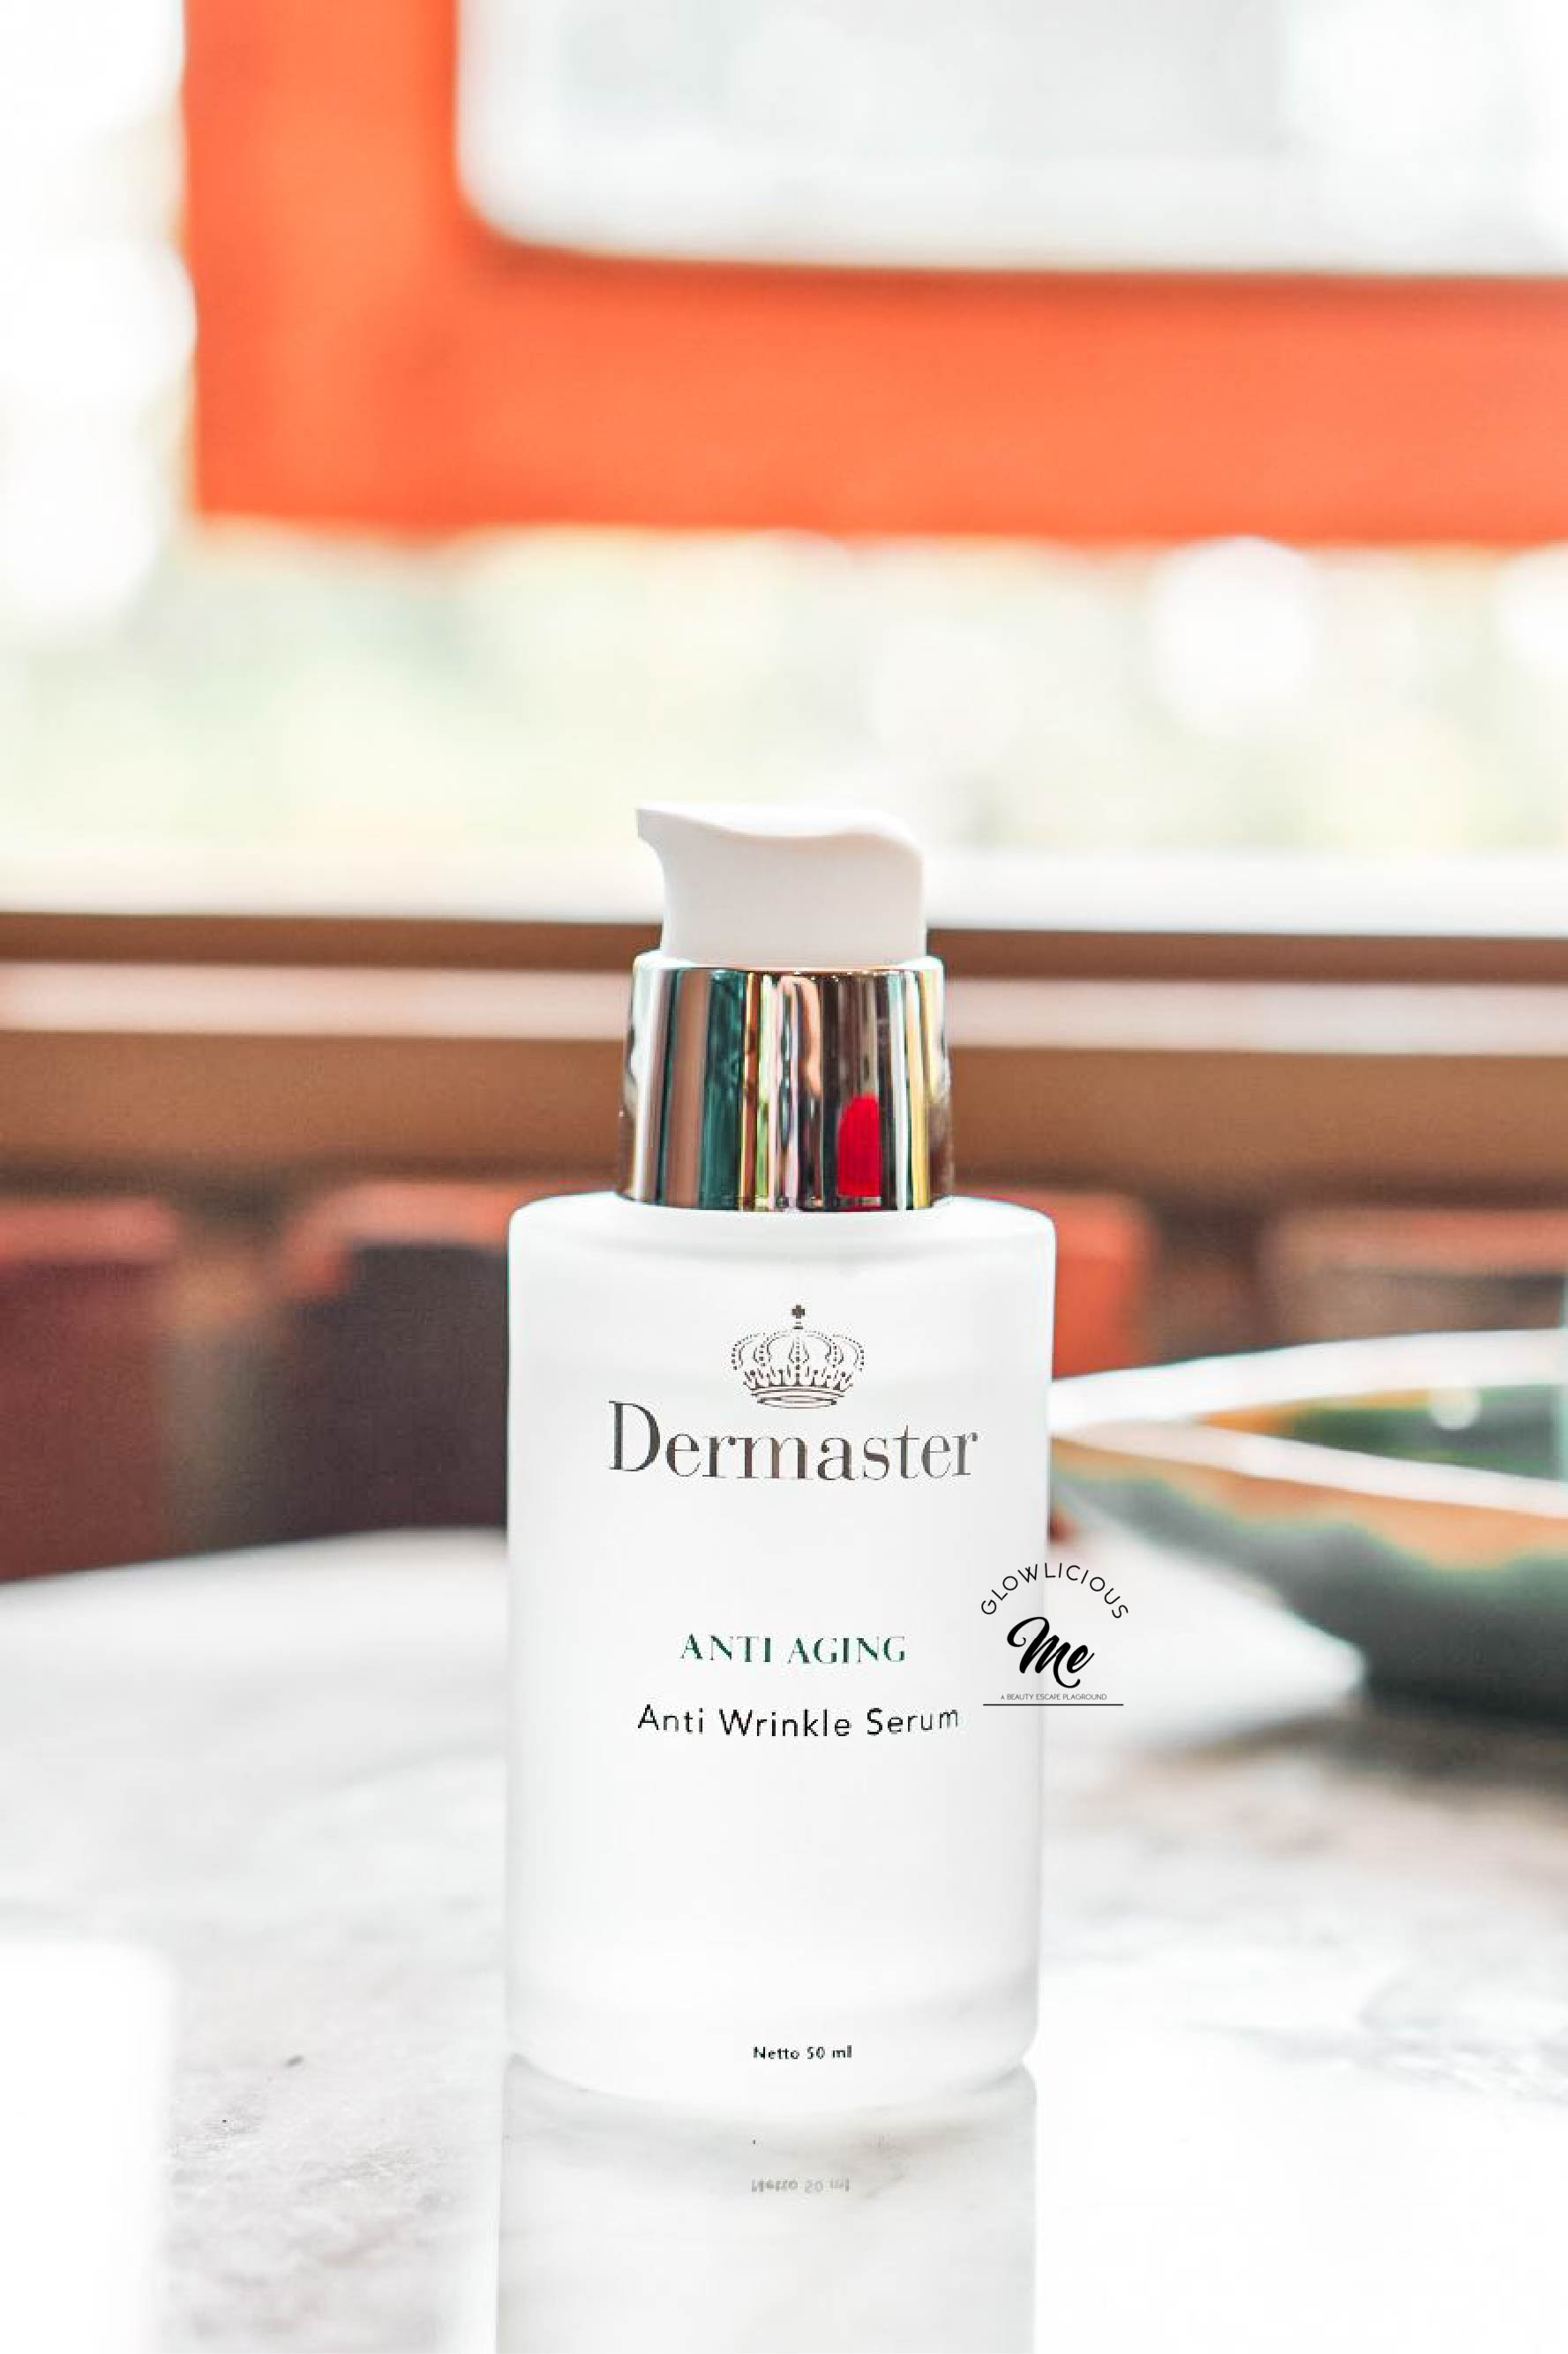 #GlowliciousMeFeatured – Dermaster Anti Anti Wrinkle Serum Dermaster Skincare - Review Dermaster